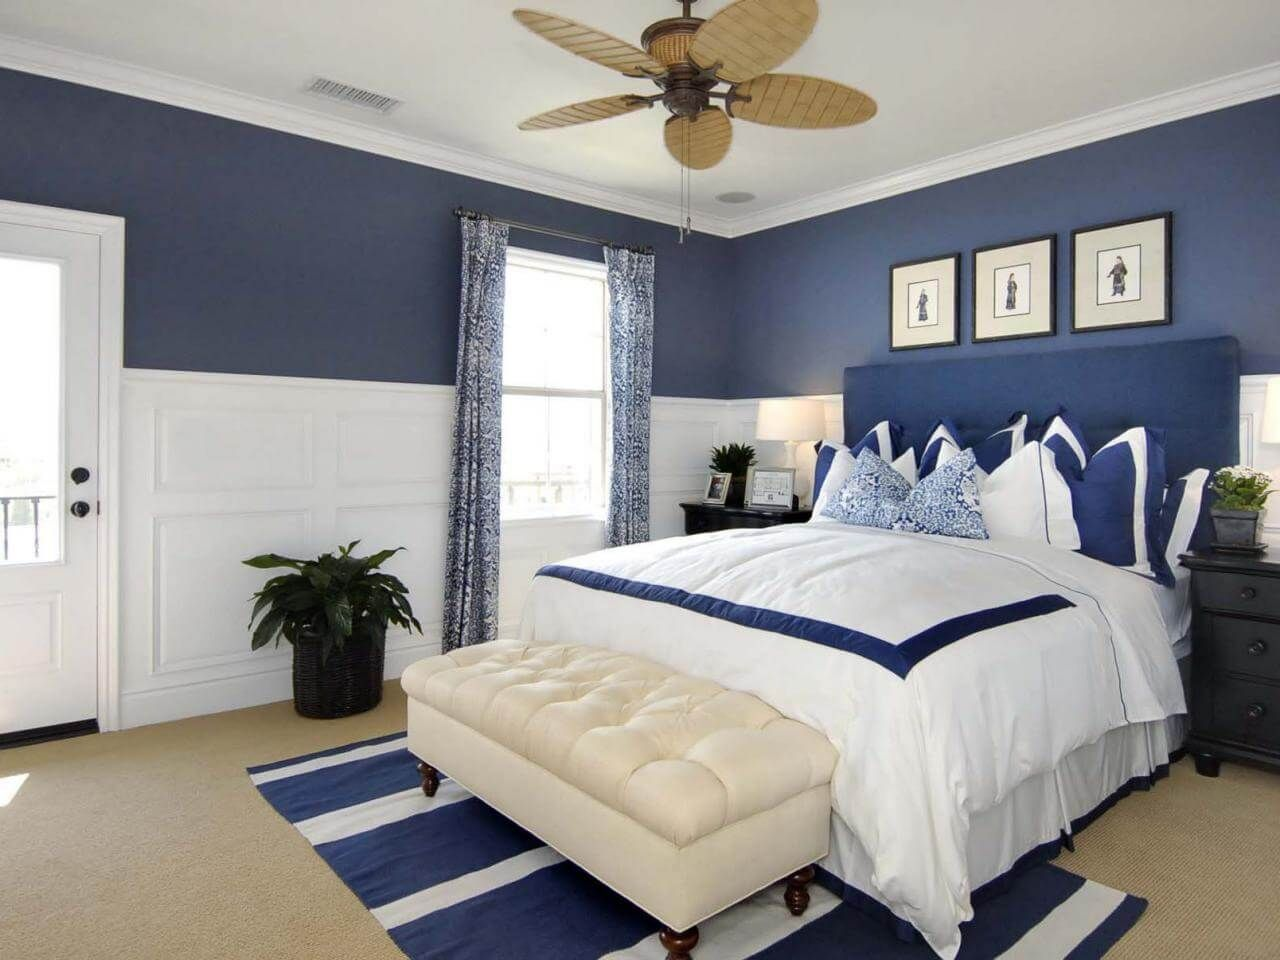 10 Blue Bedroom Ideas 2020 (Graceful and Mild) White